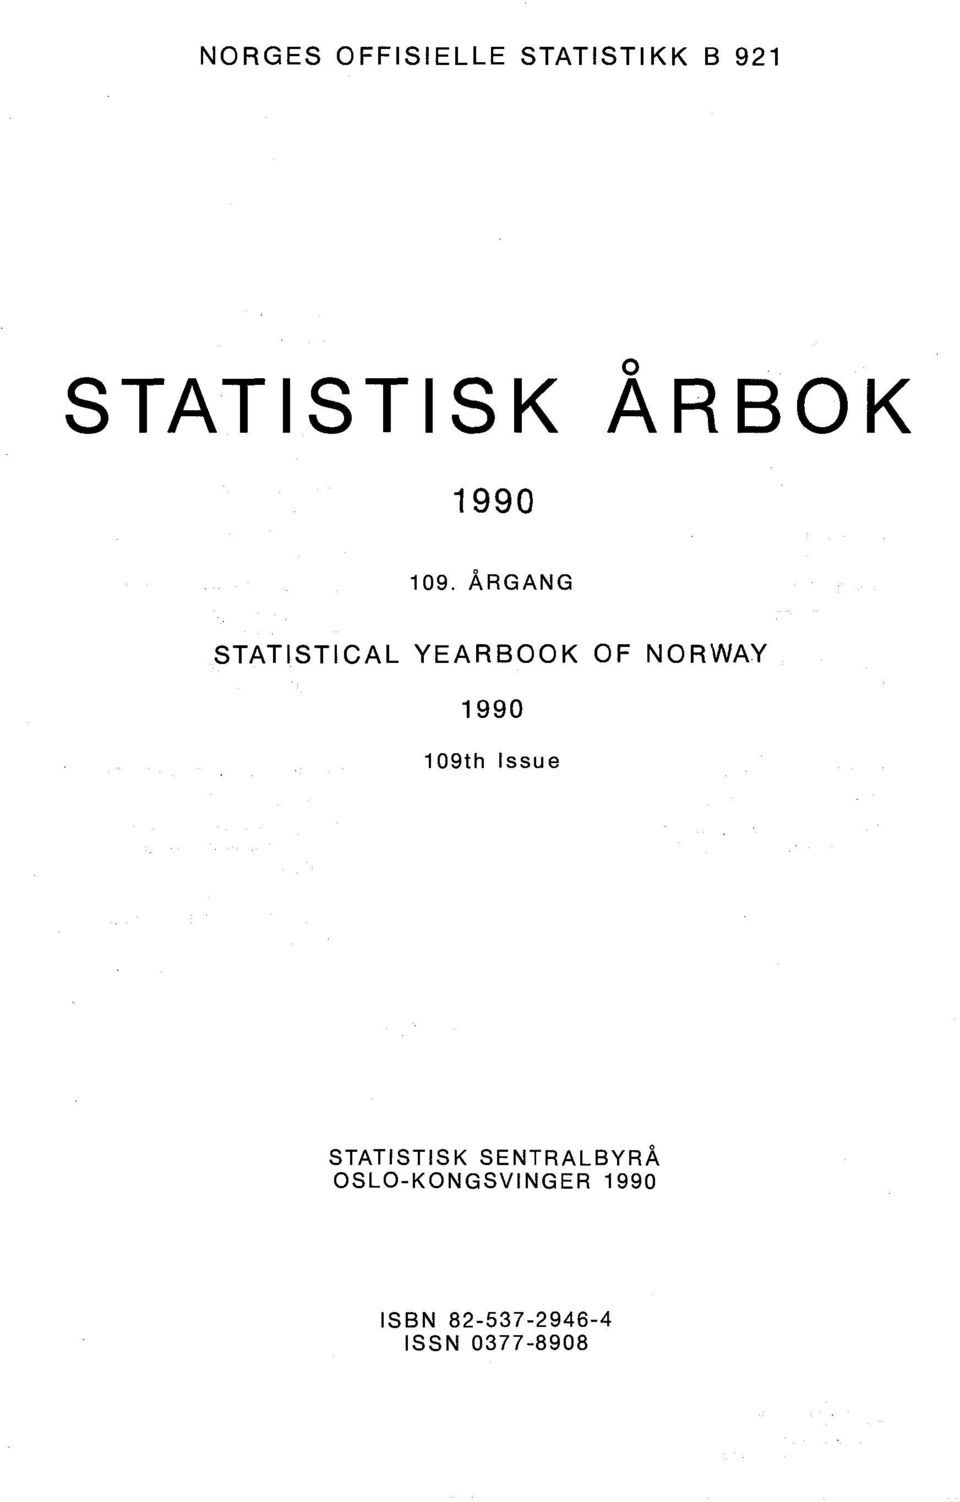 ÅRGANG STATISTICAL YEARBOOK OF NORWAY 1990 109th